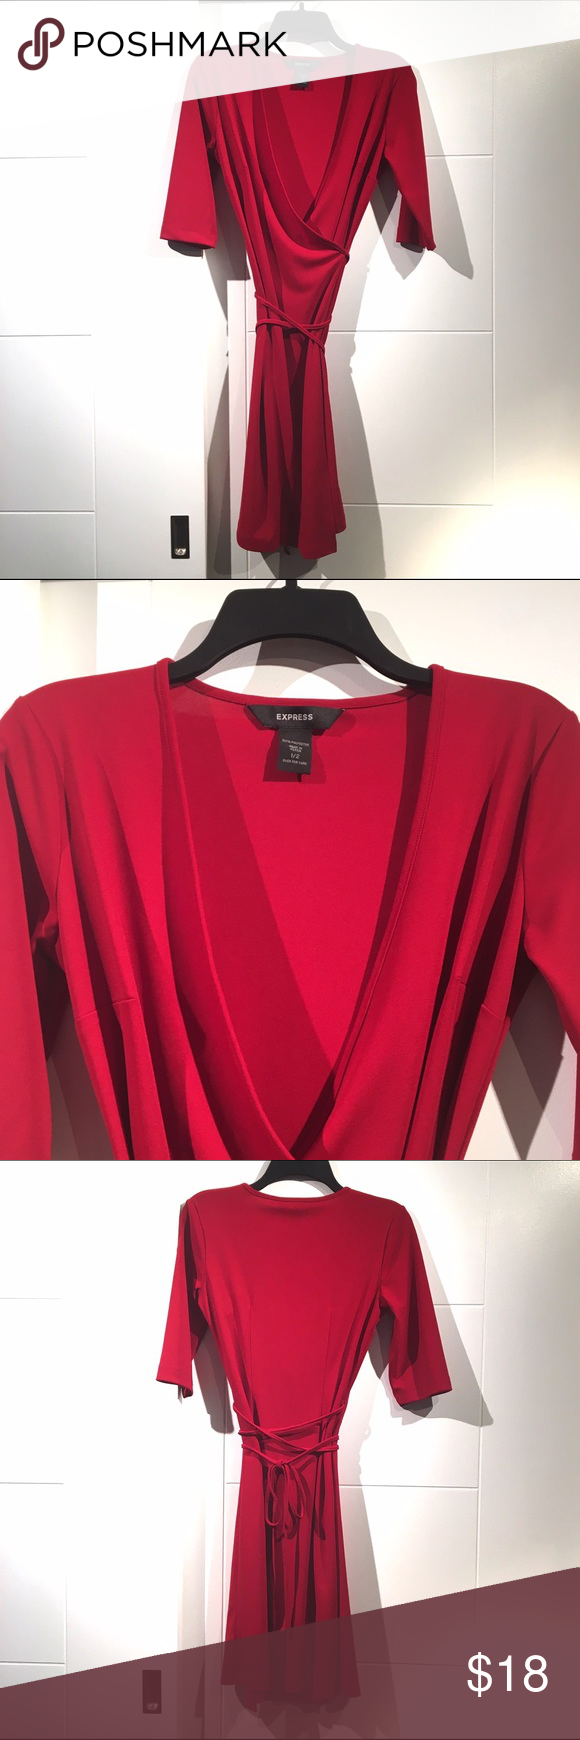 Express Dress Wrap Red Knit Size 1 / 2 Classic Red Wrap Dress. Gently Worn reflected in price. You'll look stunning. Never goes out of style! The most flattering cut. Express Dresses